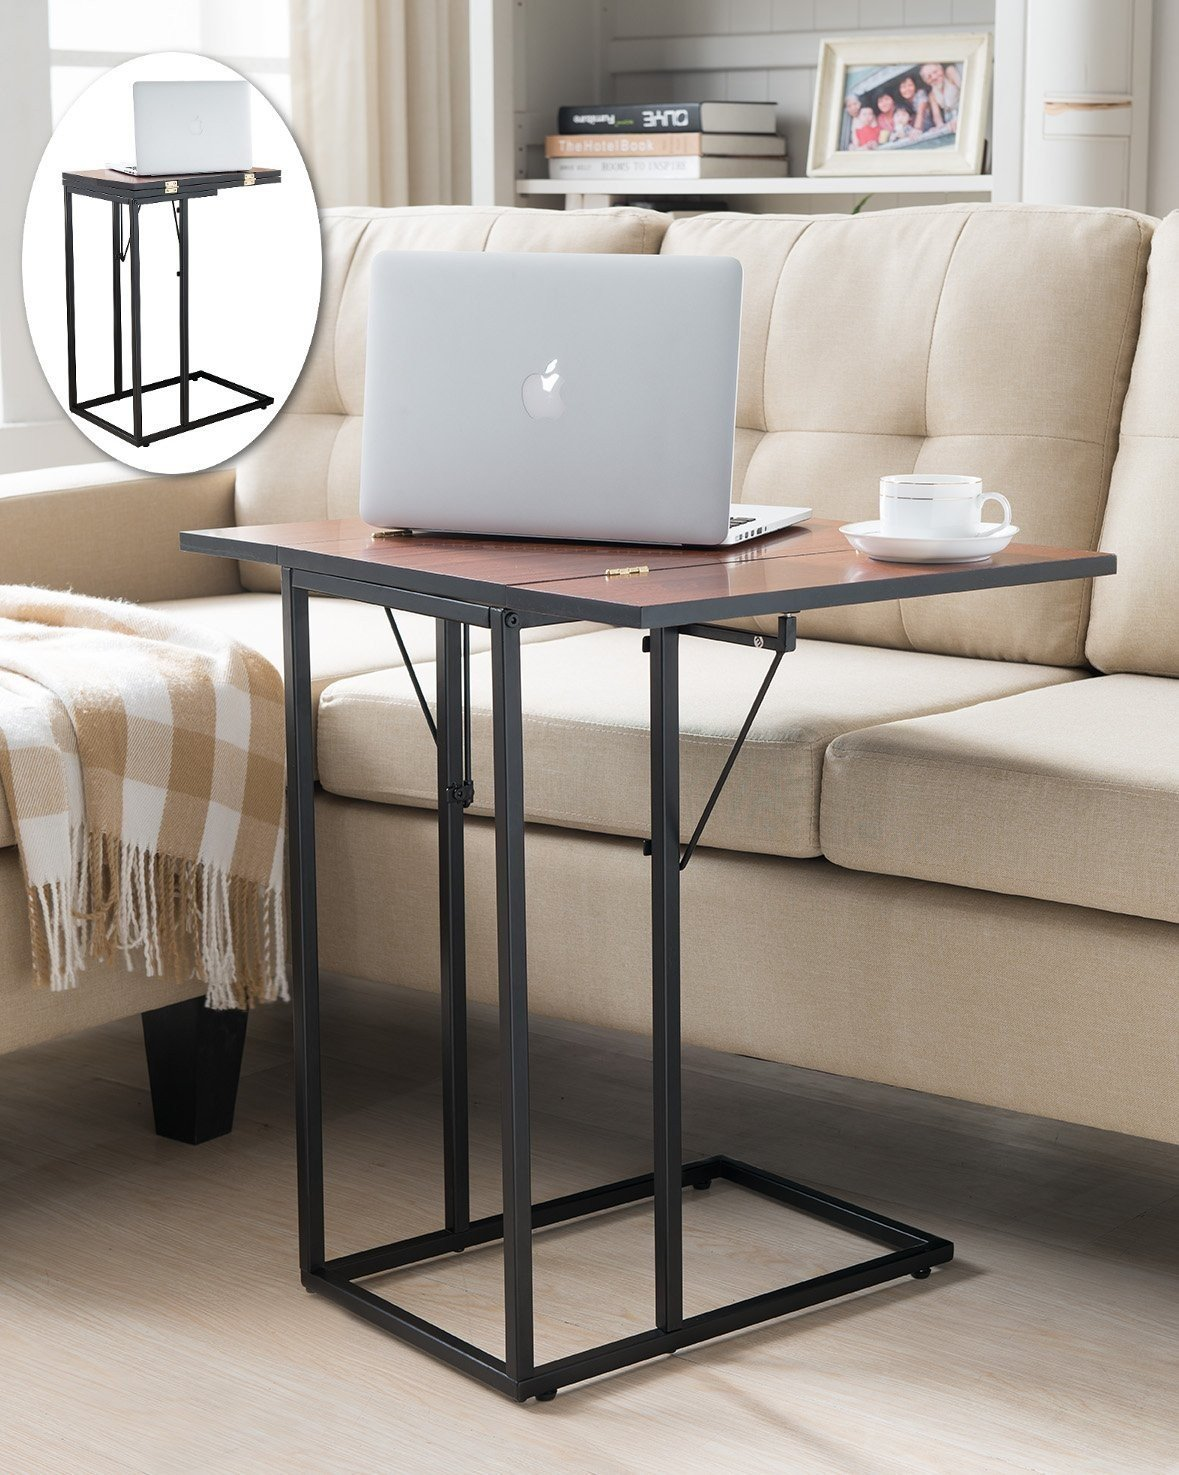 Indoor Multi-function Accent table Study Computer Desk Bedroom Living Room Modern Style End Table Sofa Side Table Coffee Table Magazine Snack Sofa Table